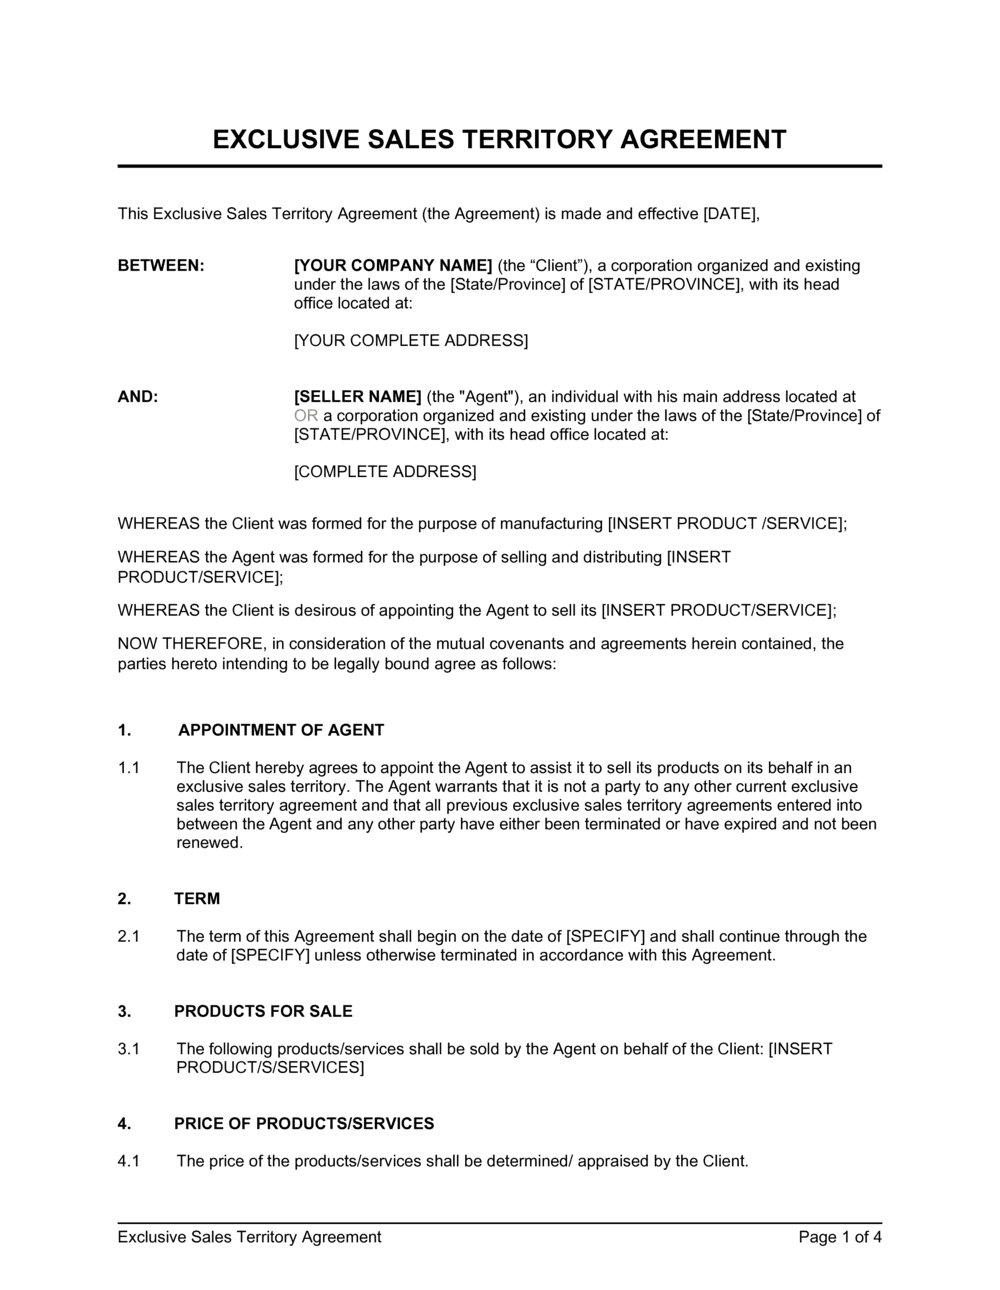 Business-in-a-Box's Exclusive Sales Territory Agreement Template